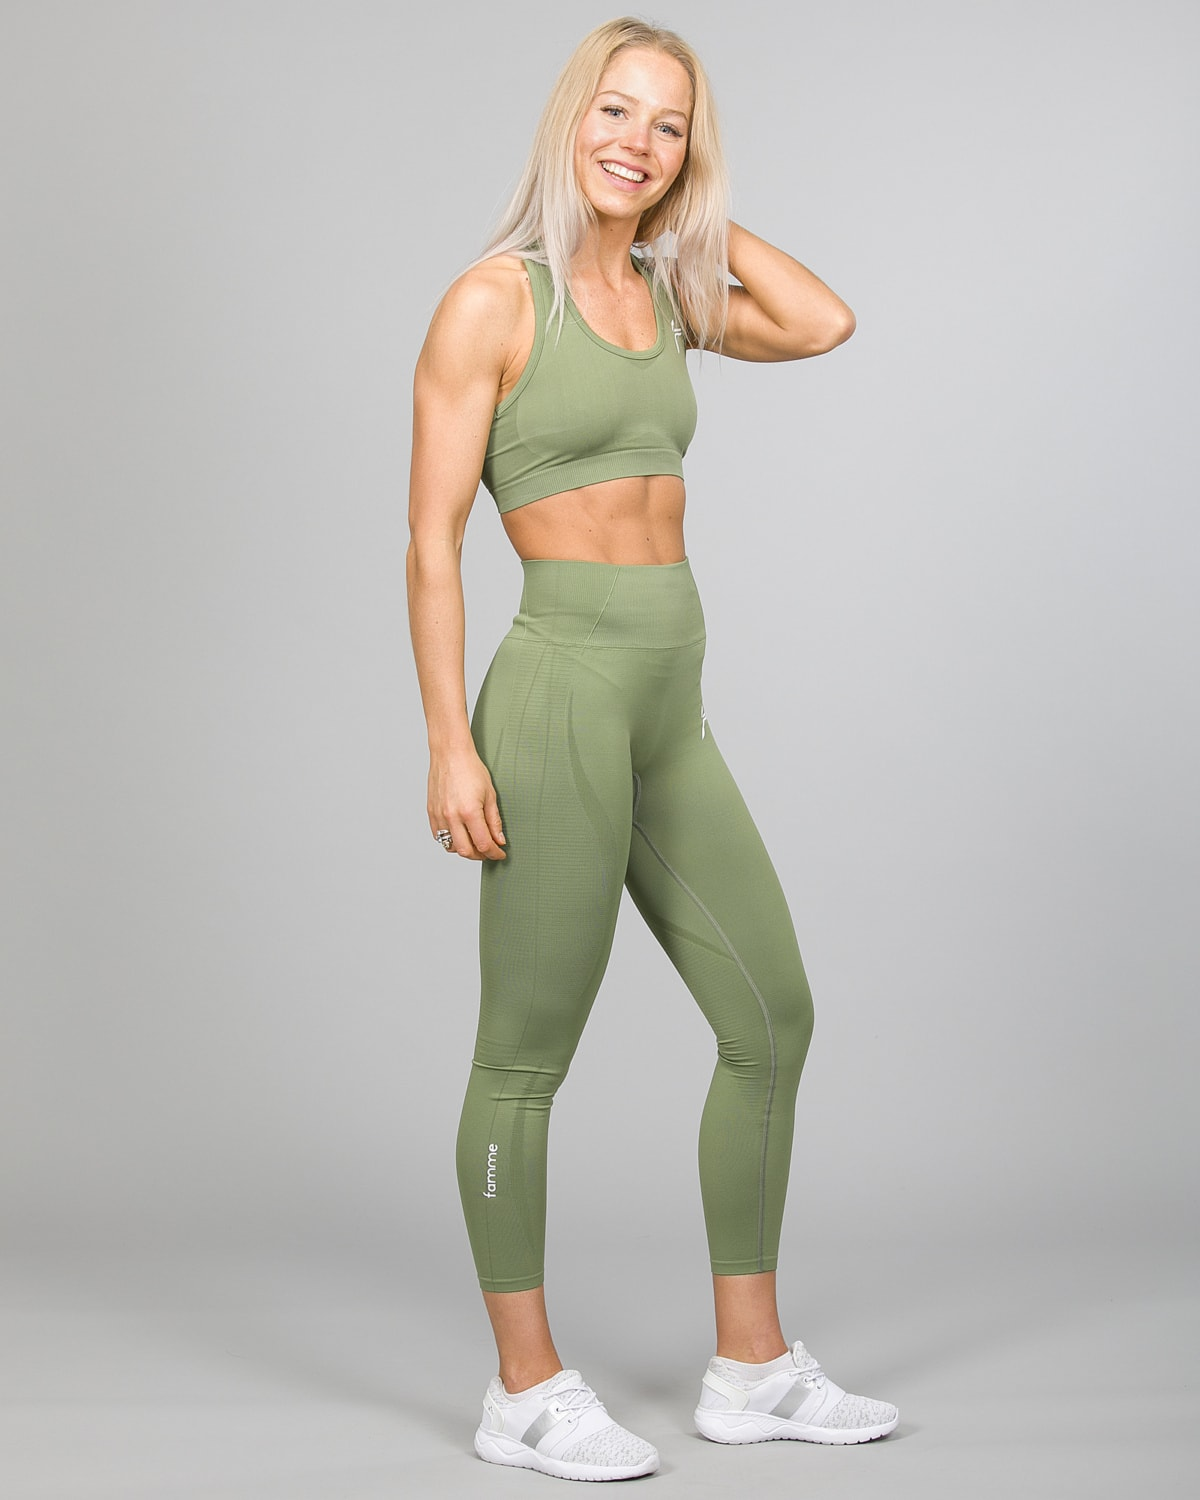 Famme Vortex Legging vhwl-ag and Drop It Sports Bra disb-ag Army Green d